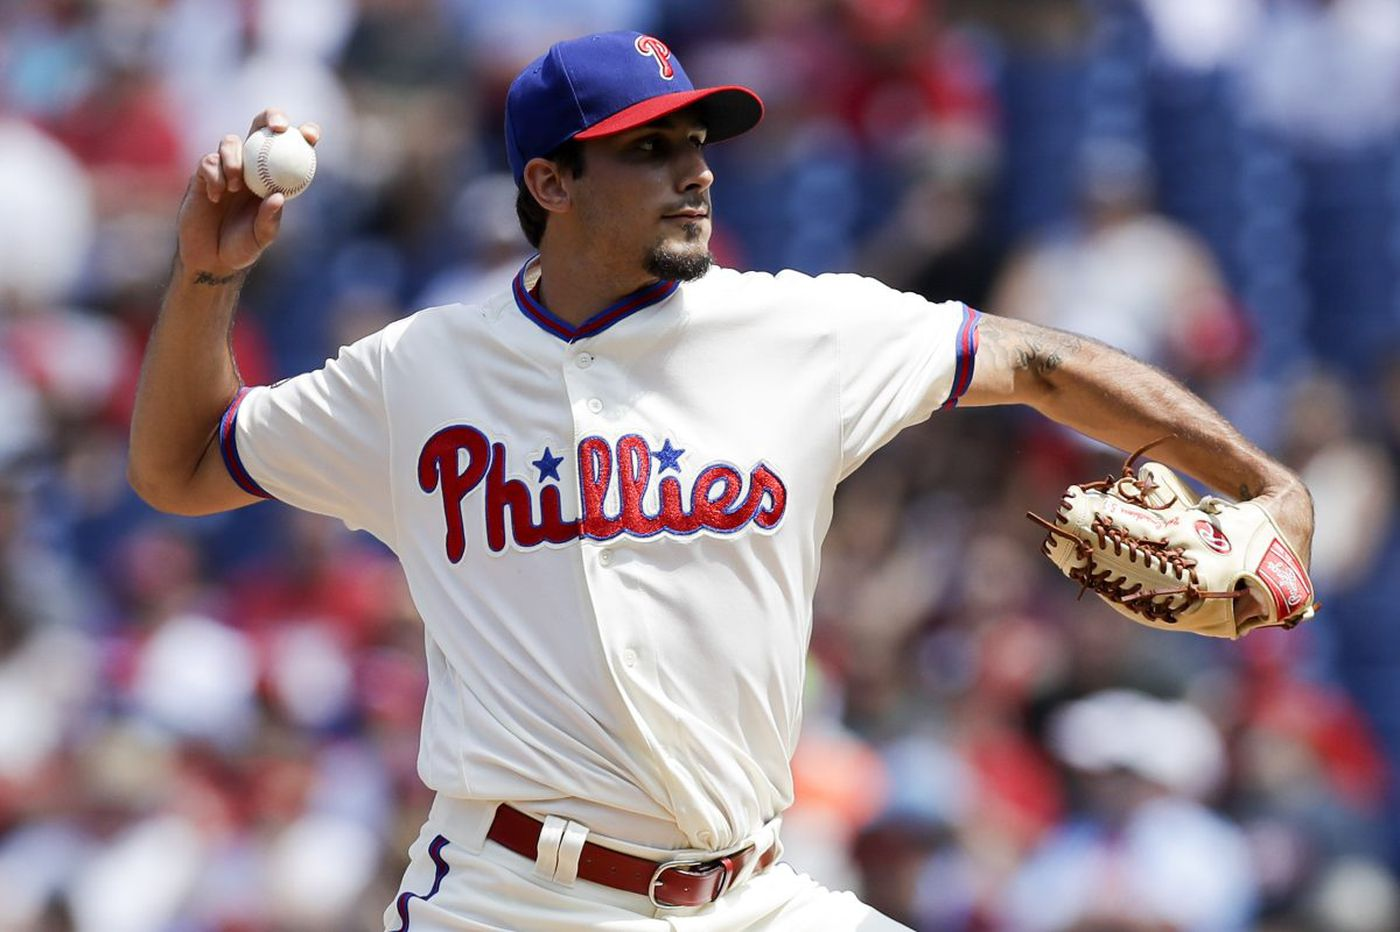 Phillies' minor league report: Zach Eflin's solid outing helps Lehigh Valley open with win